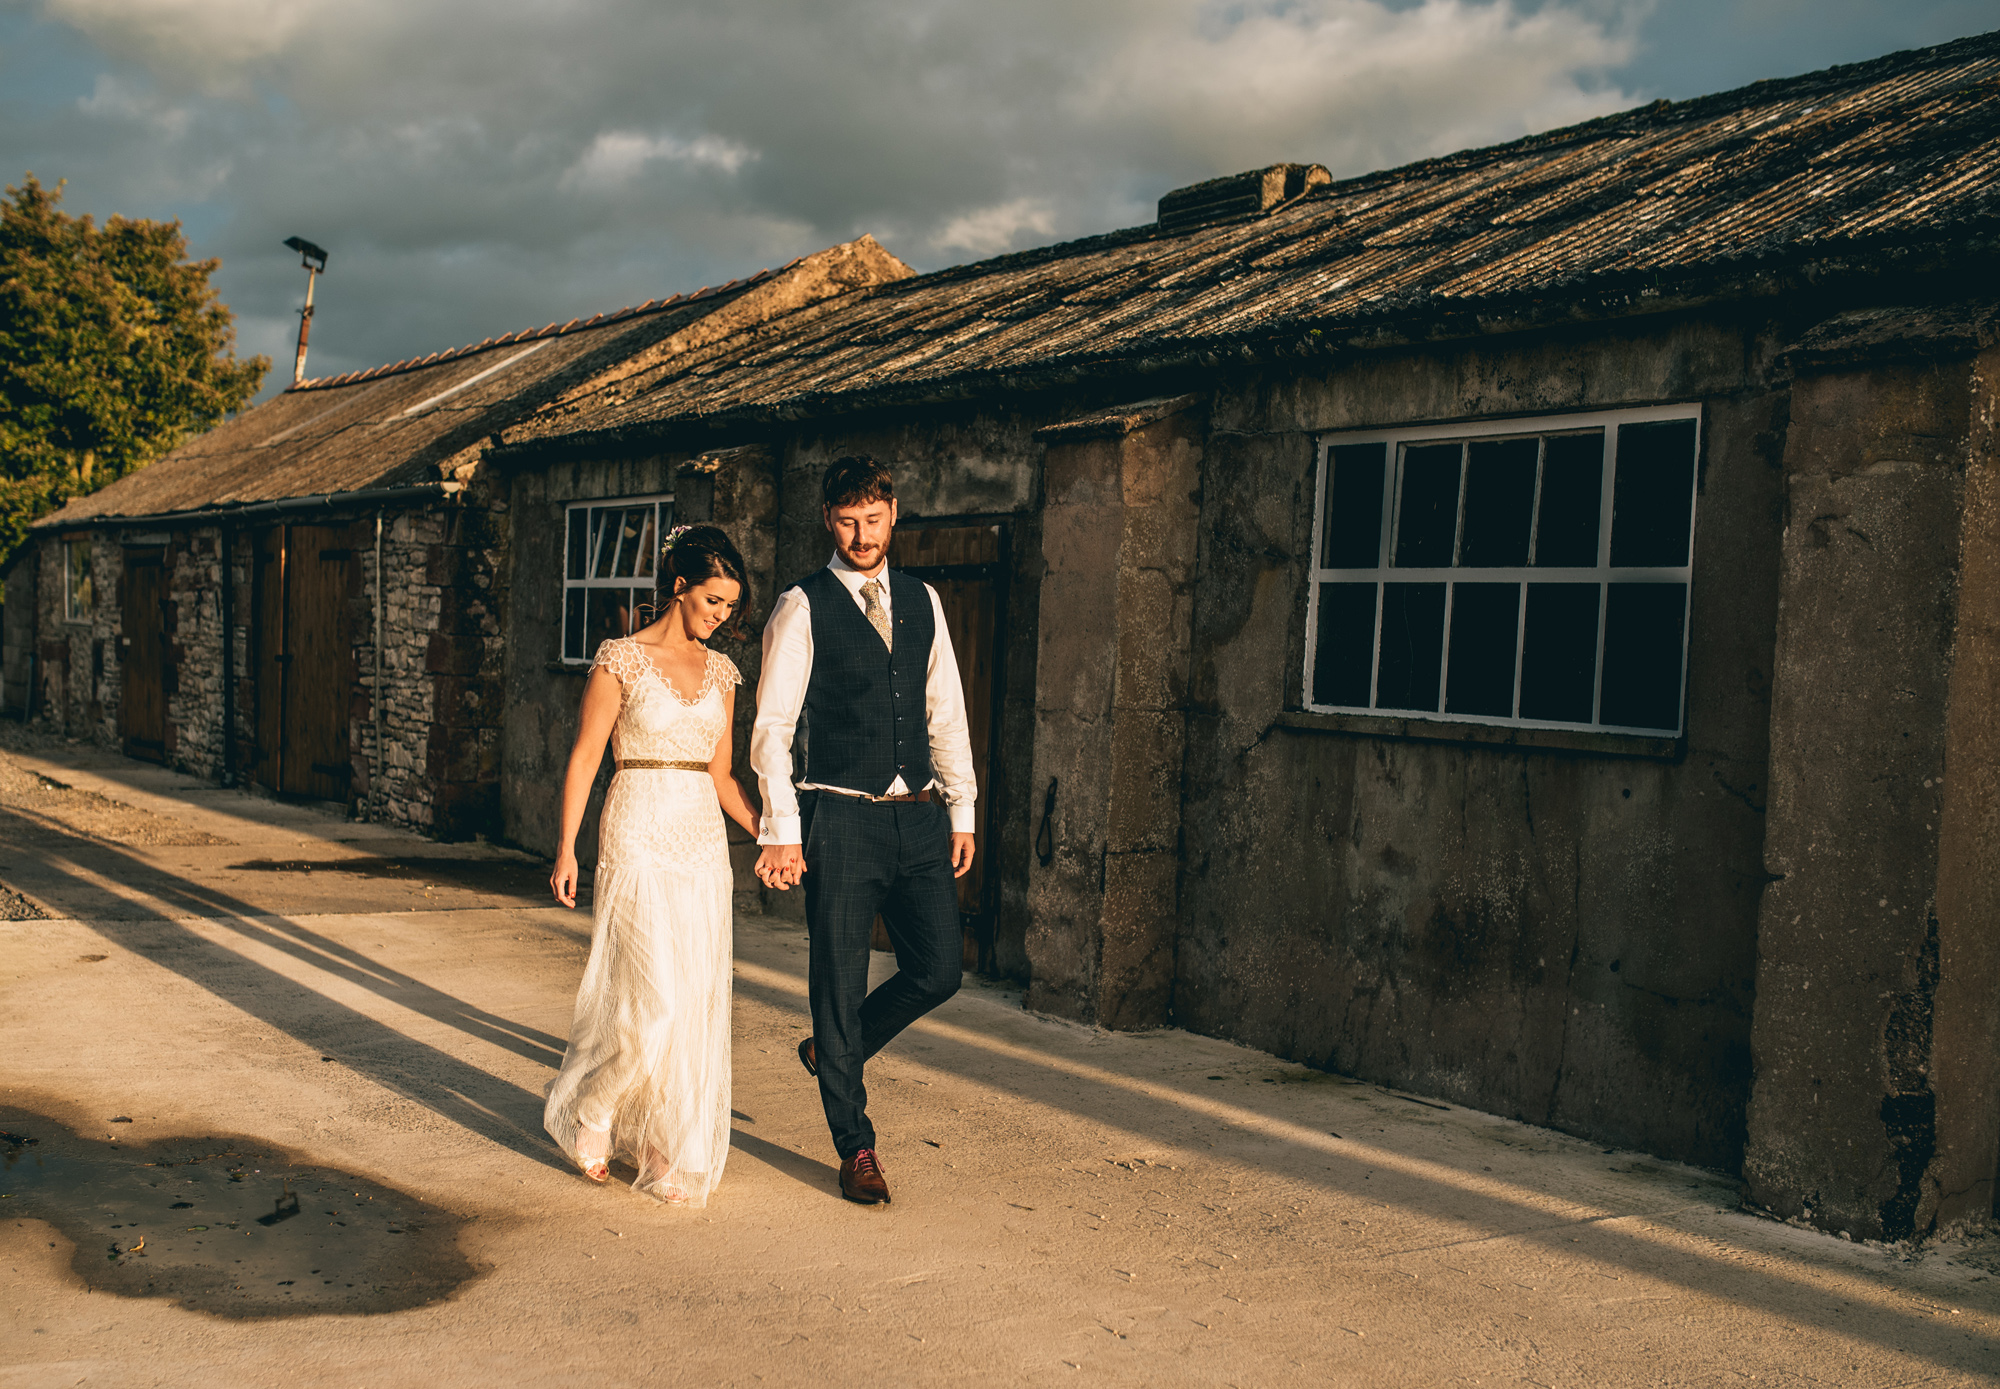 Kate-Beaumont-Sheffield-Lucy-Bohemian-Lace-Dress-Barn-Wedding-Cumbria-49.jpg